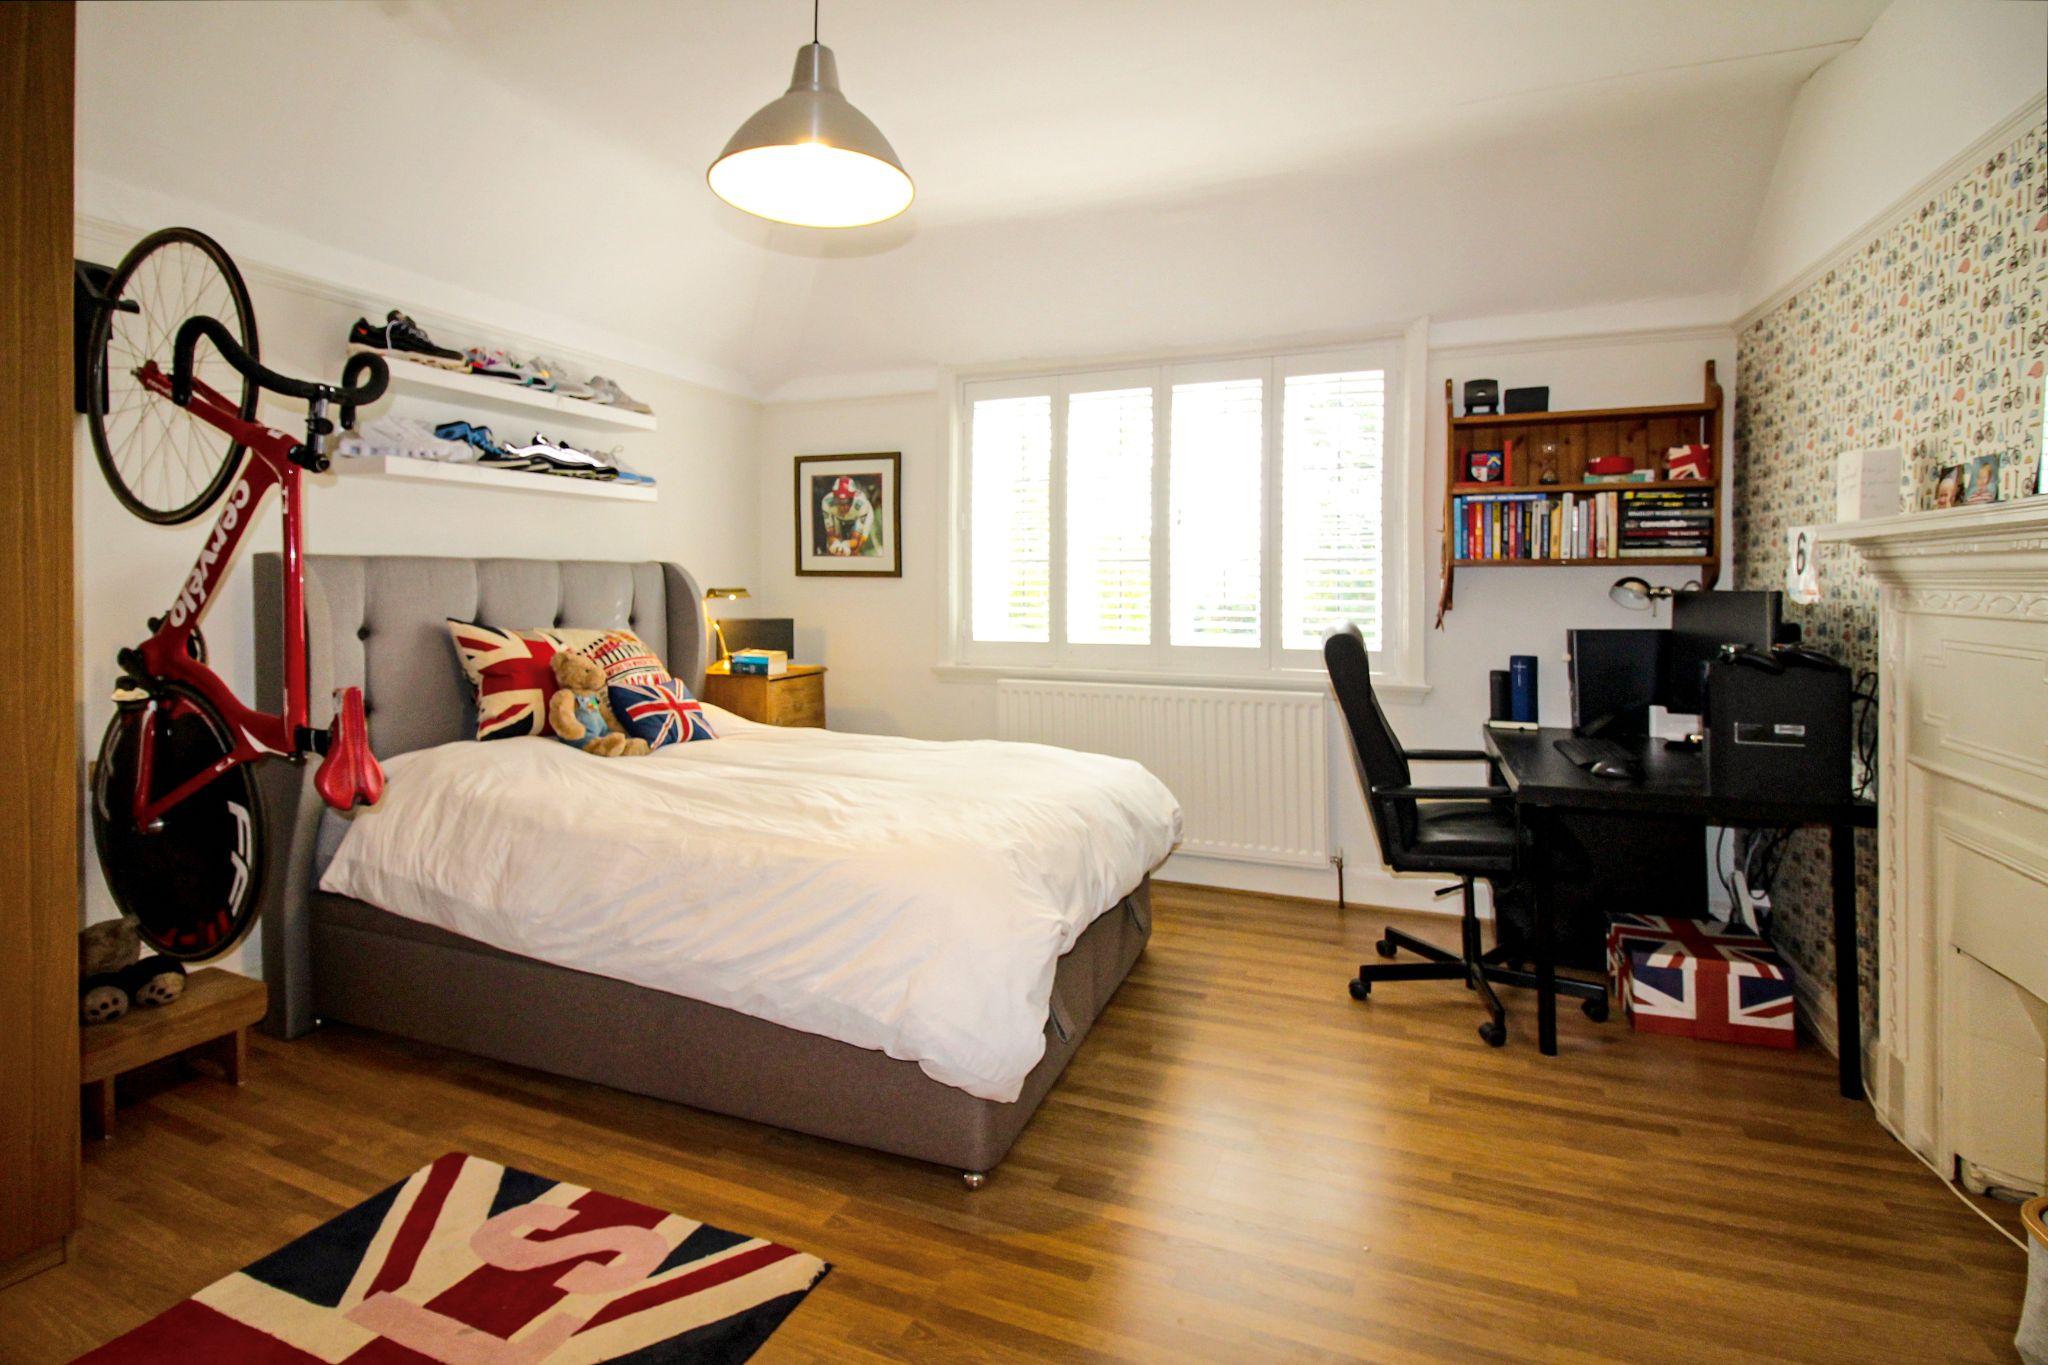 5 bedroom detached house For Sale in Solihull - Photograph 13.